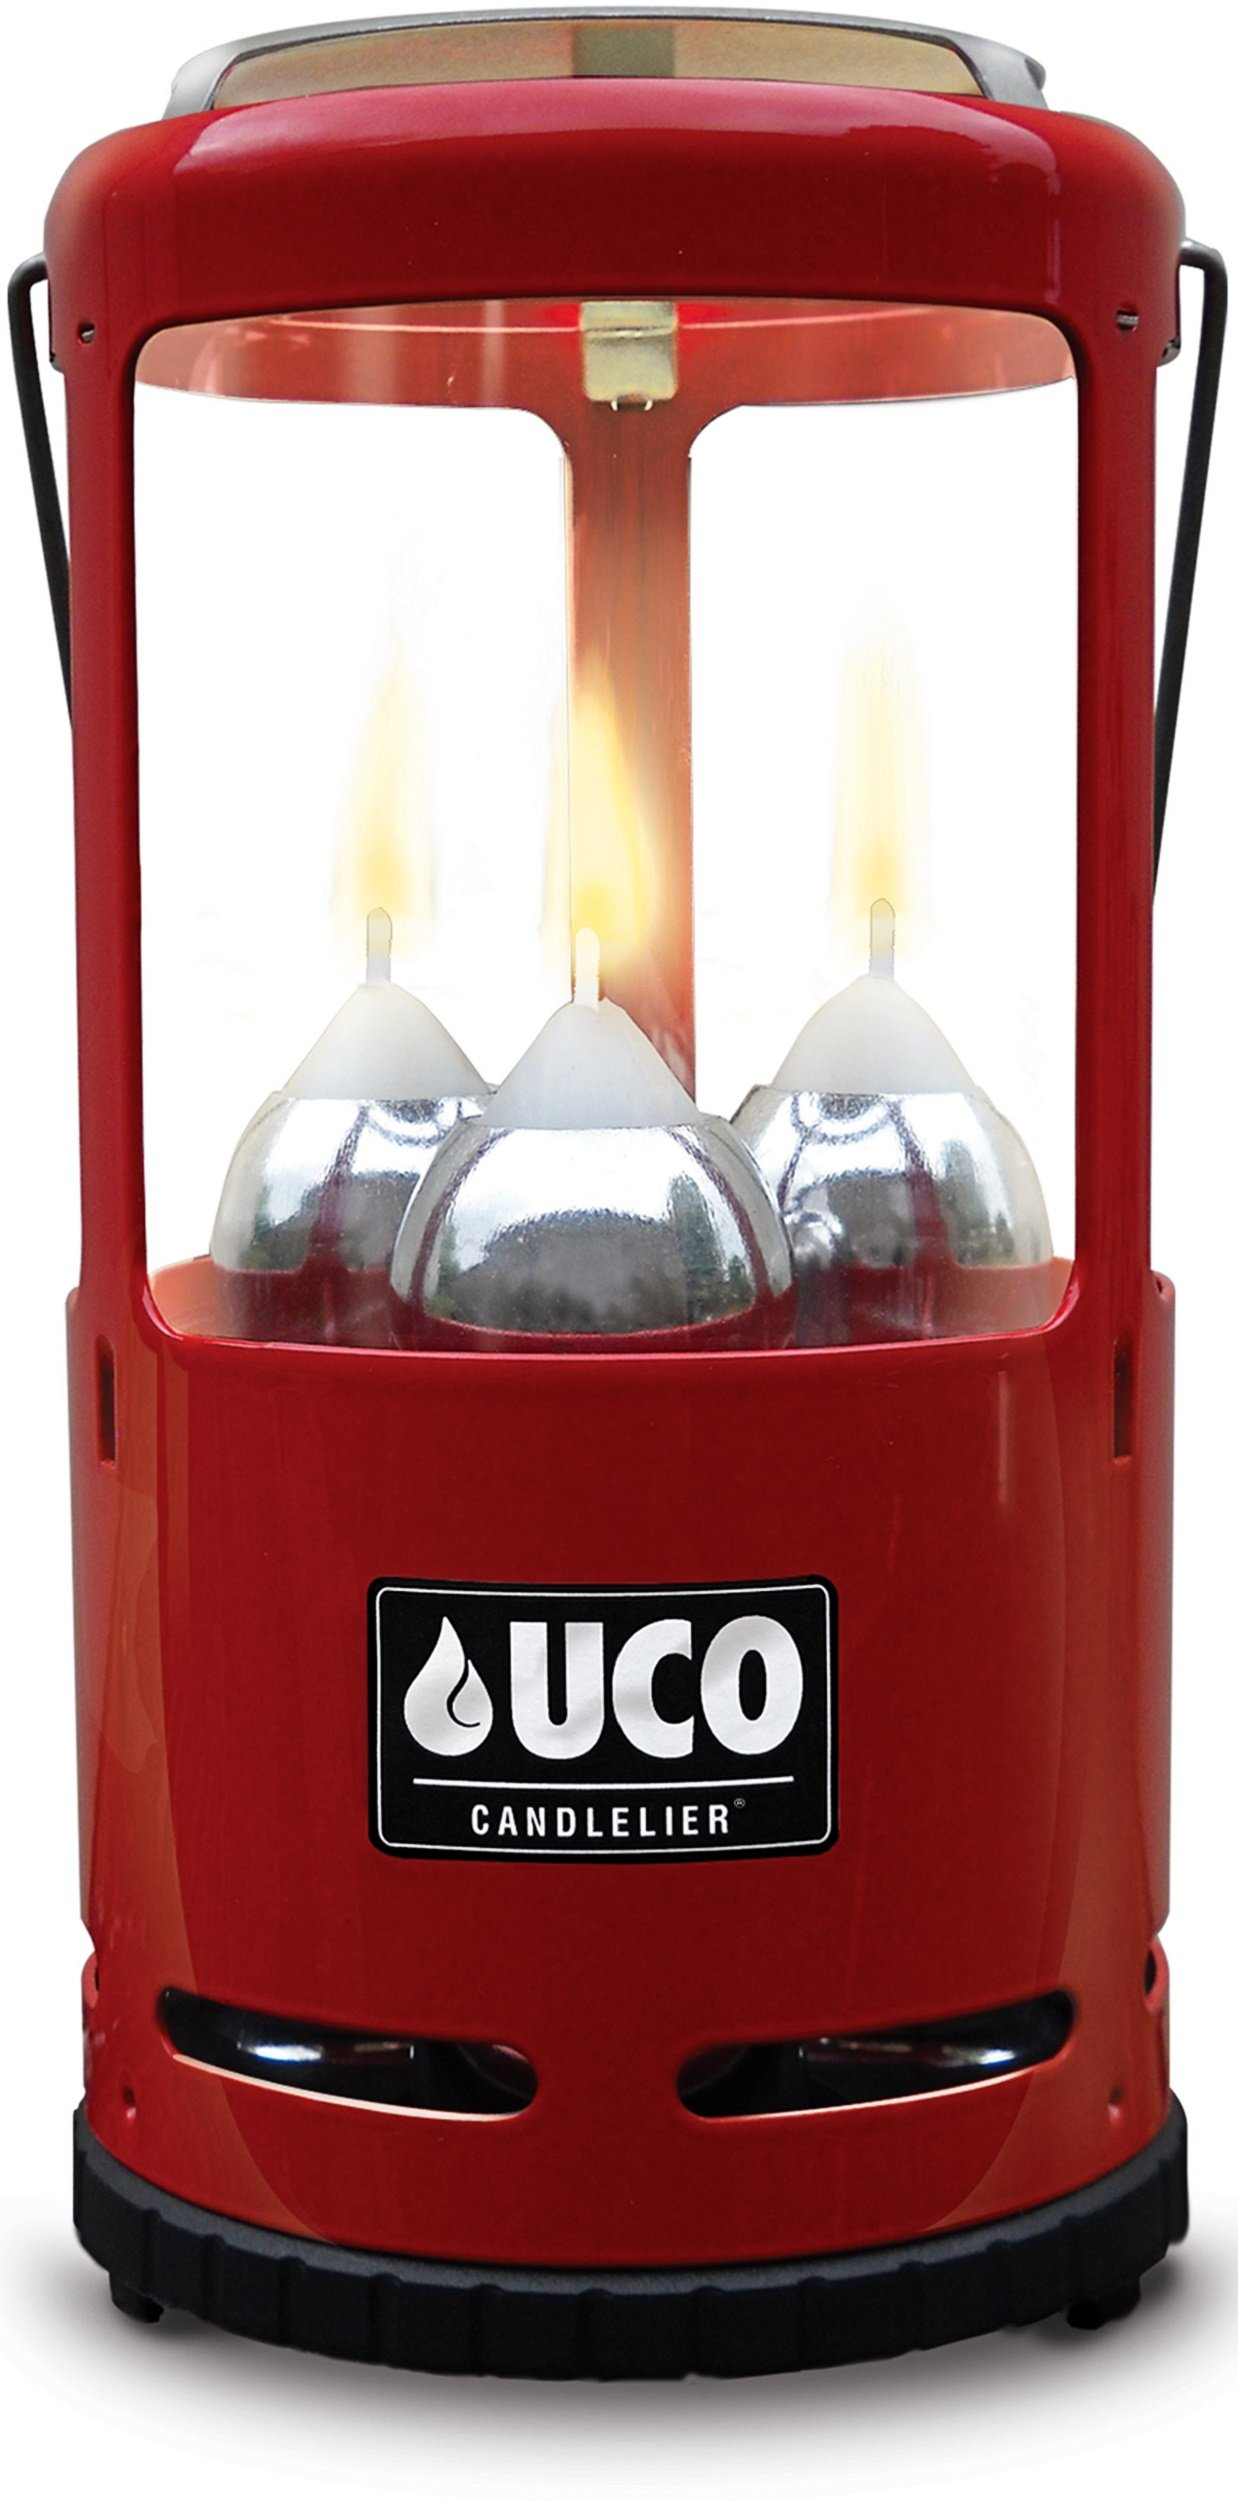 UCO Candlelier Deluxe Candle Lantern, Red